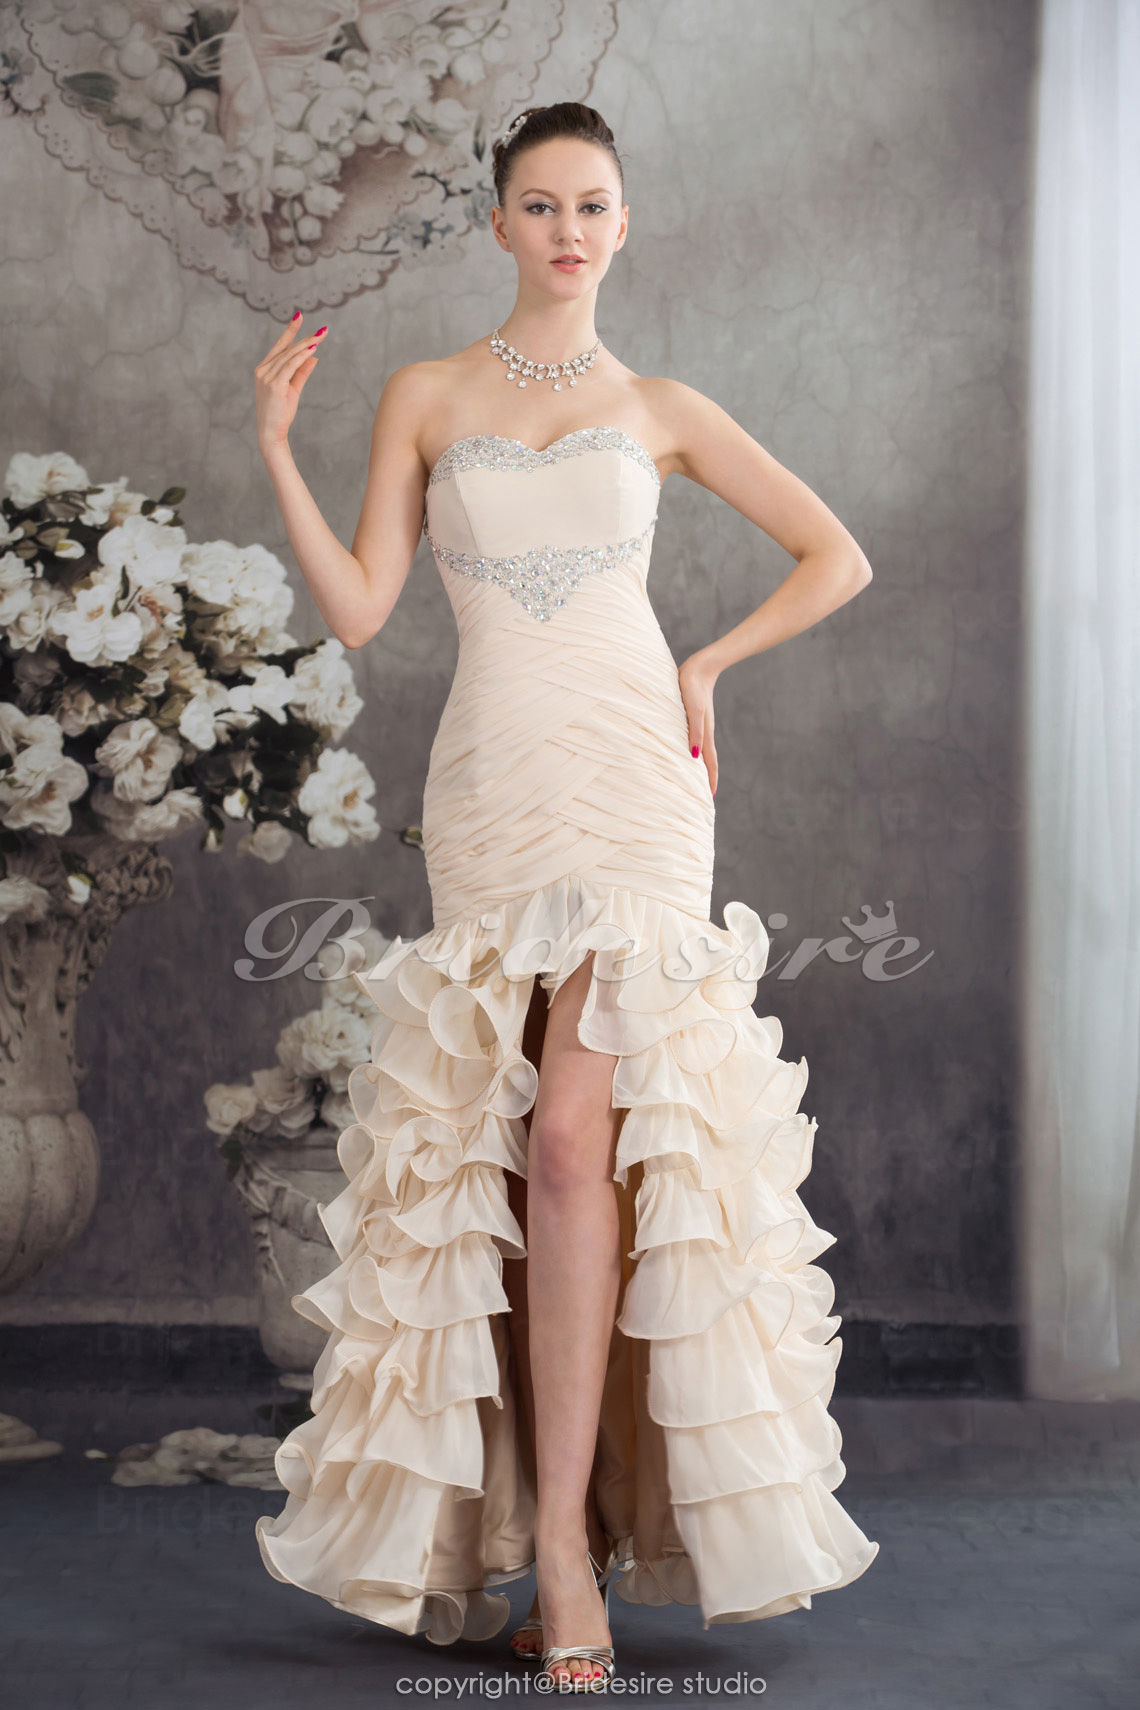 Trumpet/Mermaid Sweetheart Floor-length Sleeveless Chiffon Dress